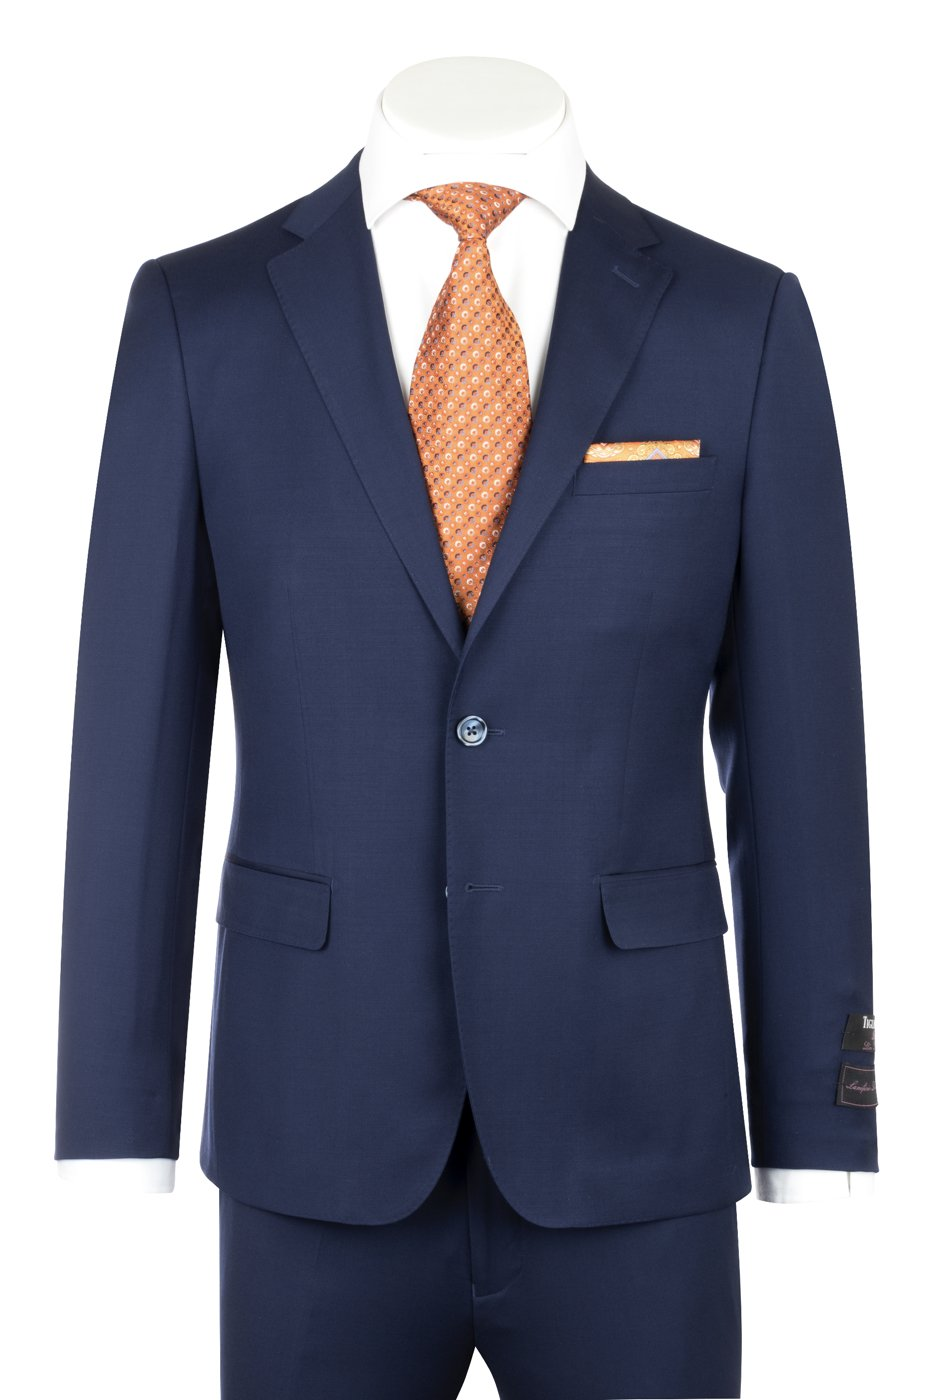 Porto French Blue, Slim Fit, Pure Wool Suit by Tiglio Luxe TIG5966